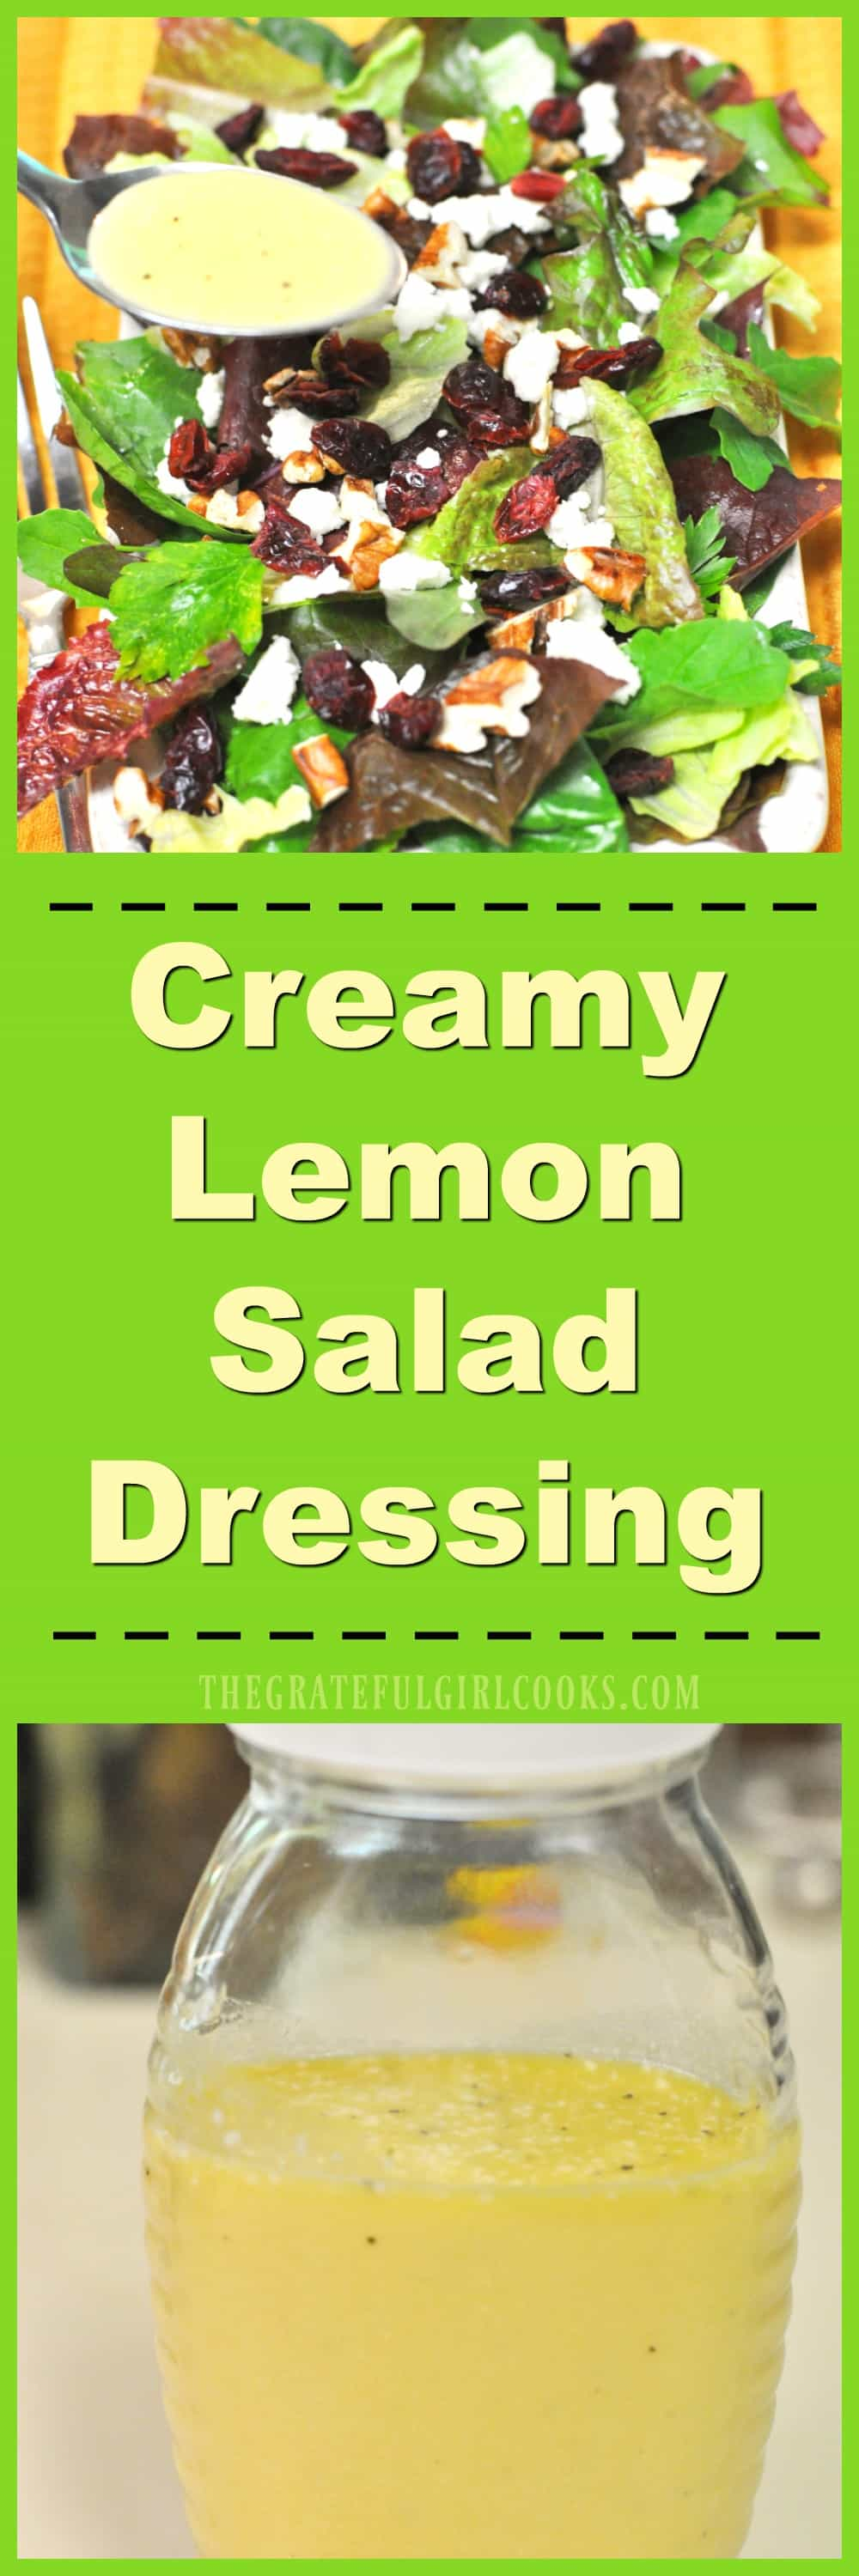 Creamy Lemon Salad Dressing / The Grateful Girl Cooks! This delicious, creamy lemon salad dressing is easy to make from scratch in a couple minutes, with only a few pantry ingredients!